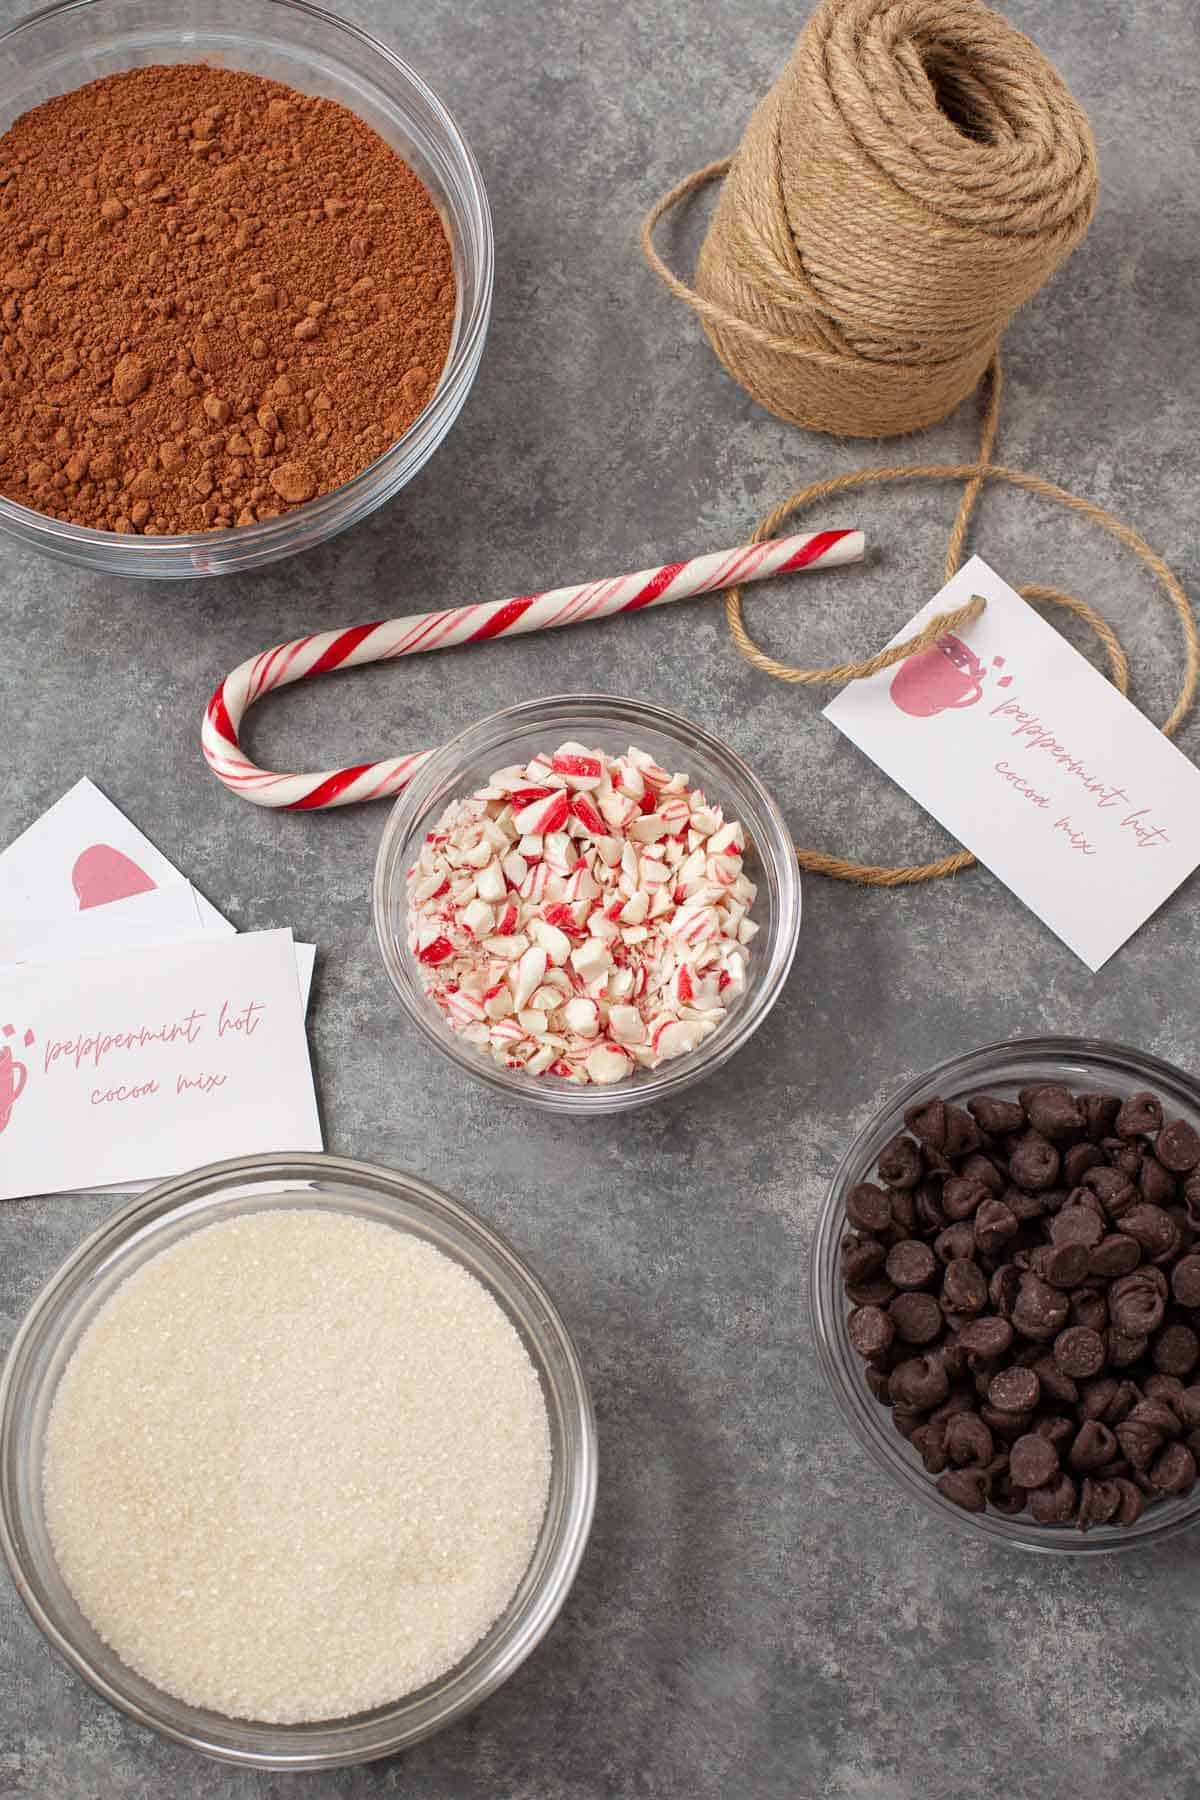 peppermint hot chocolate ingredients